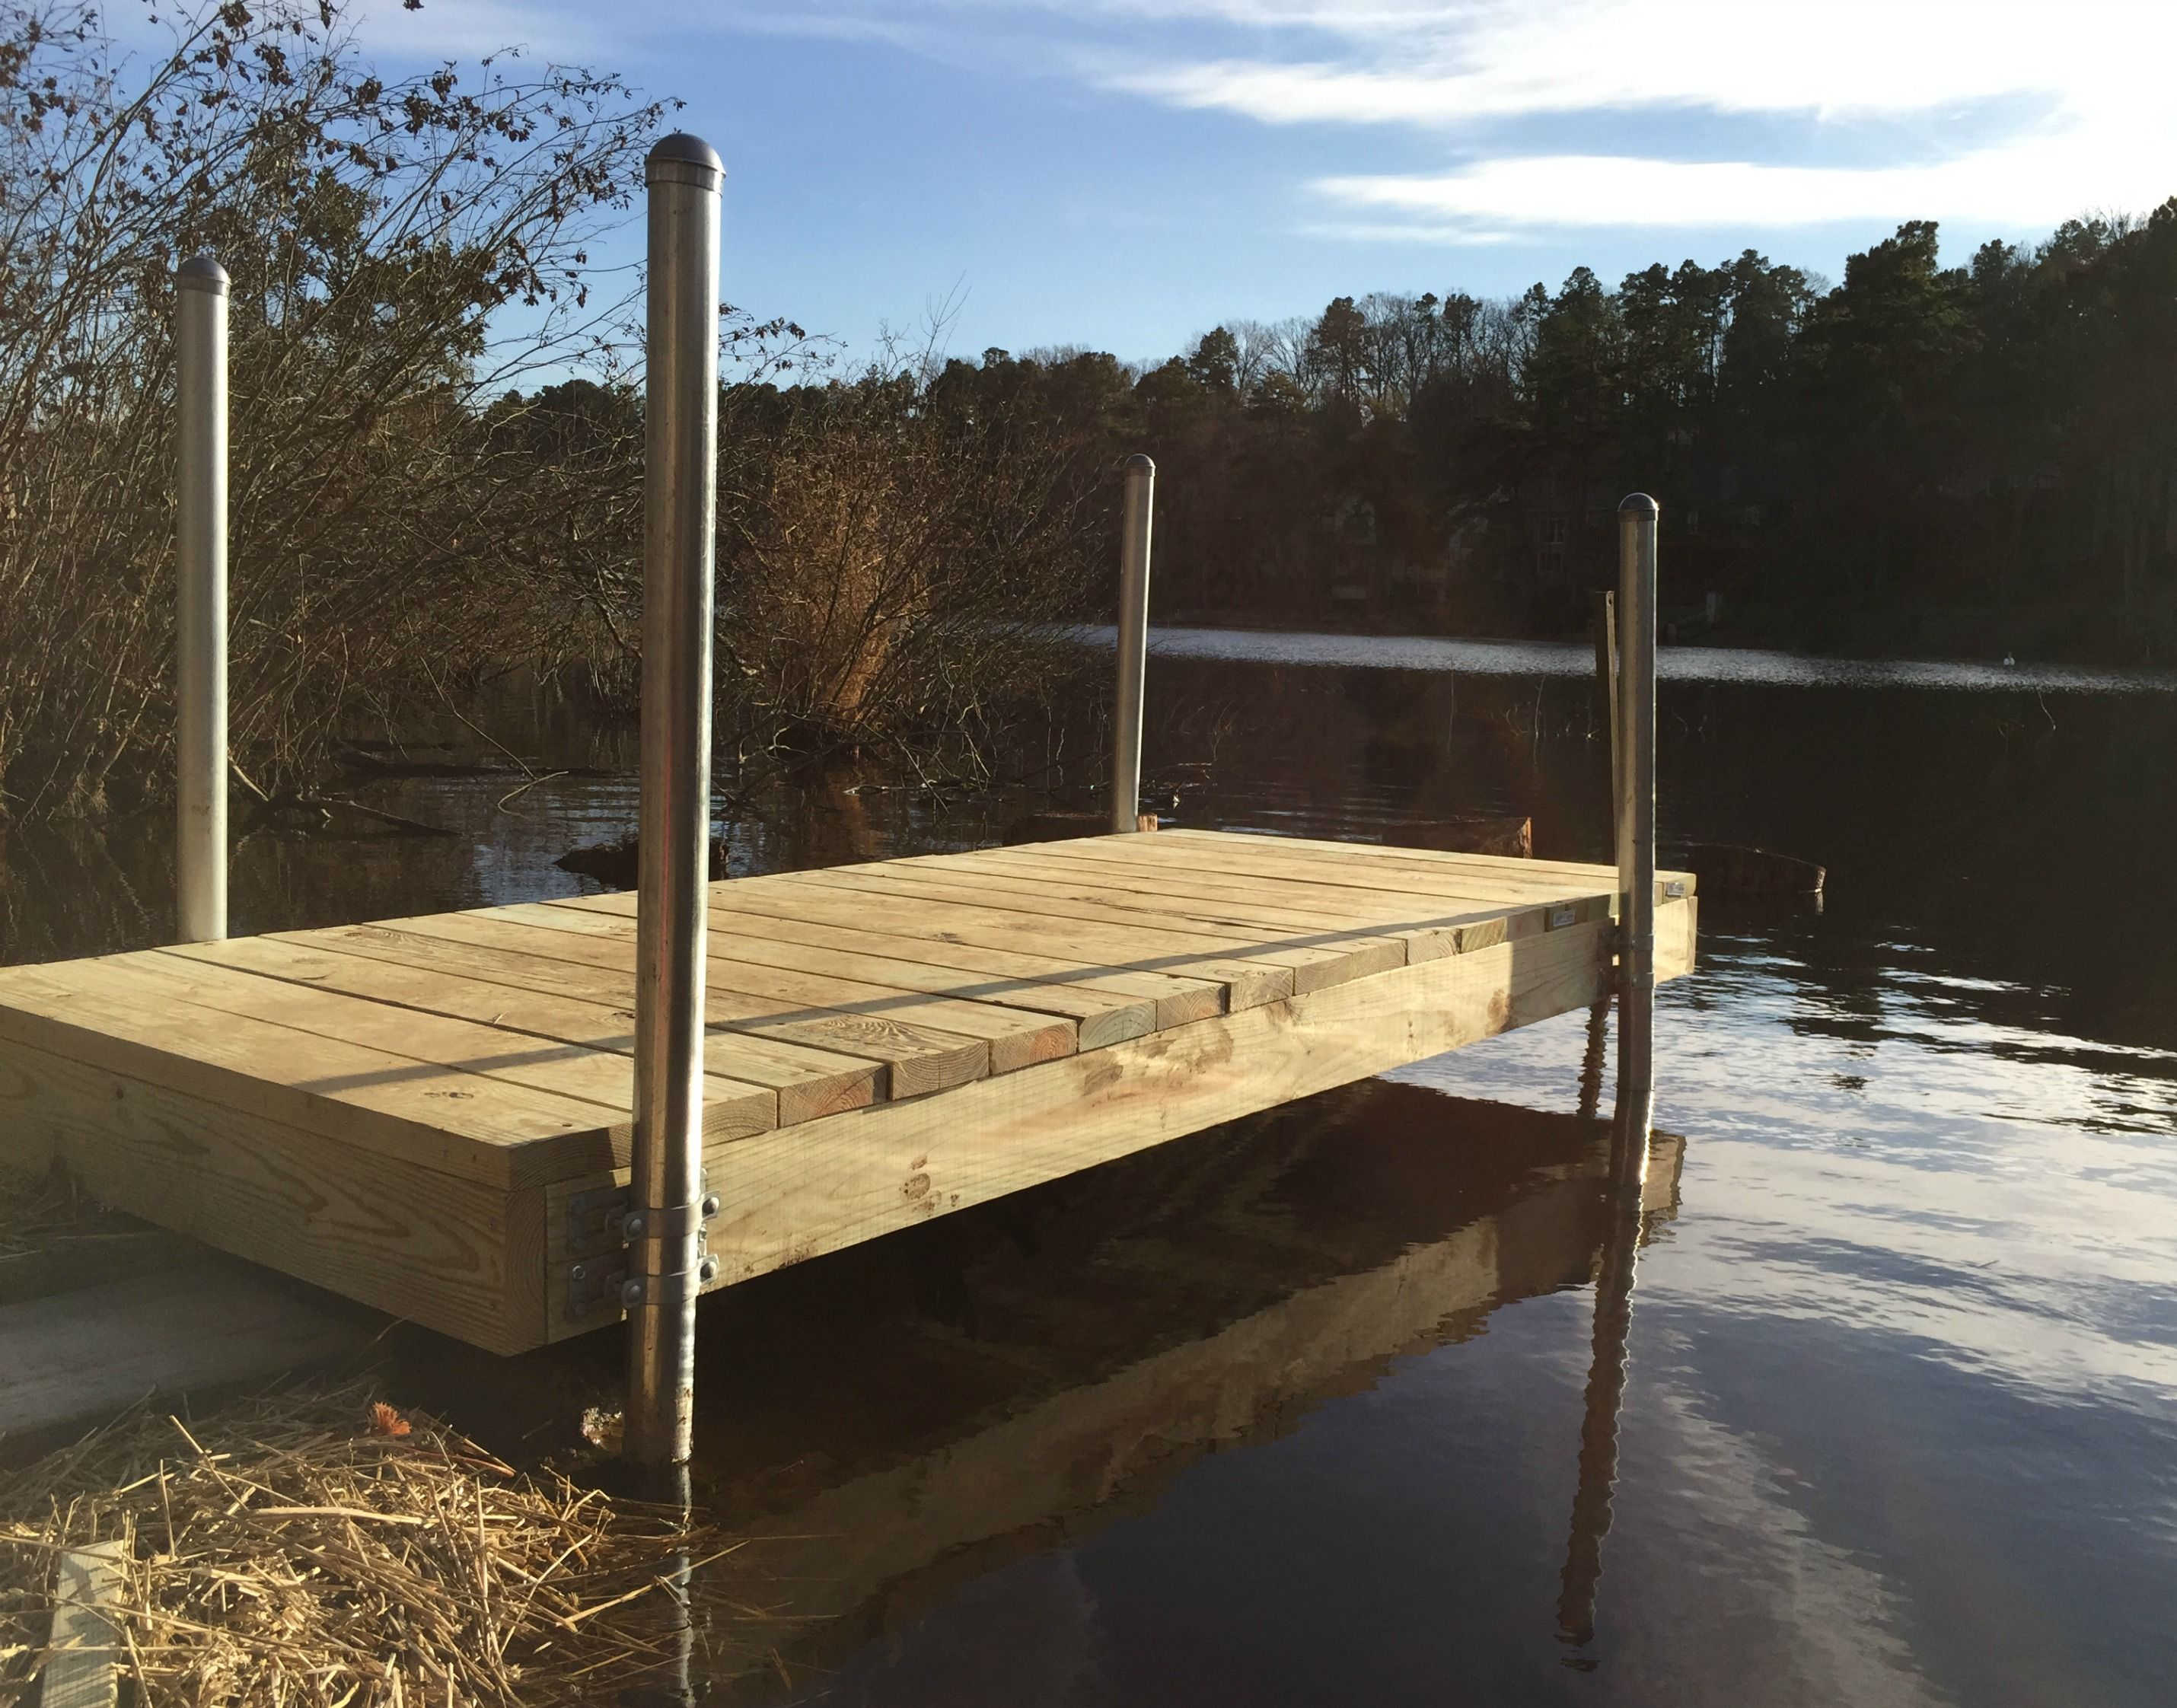 Build a DIY Boat Dock | Boat dock, Boating and Dock ideas